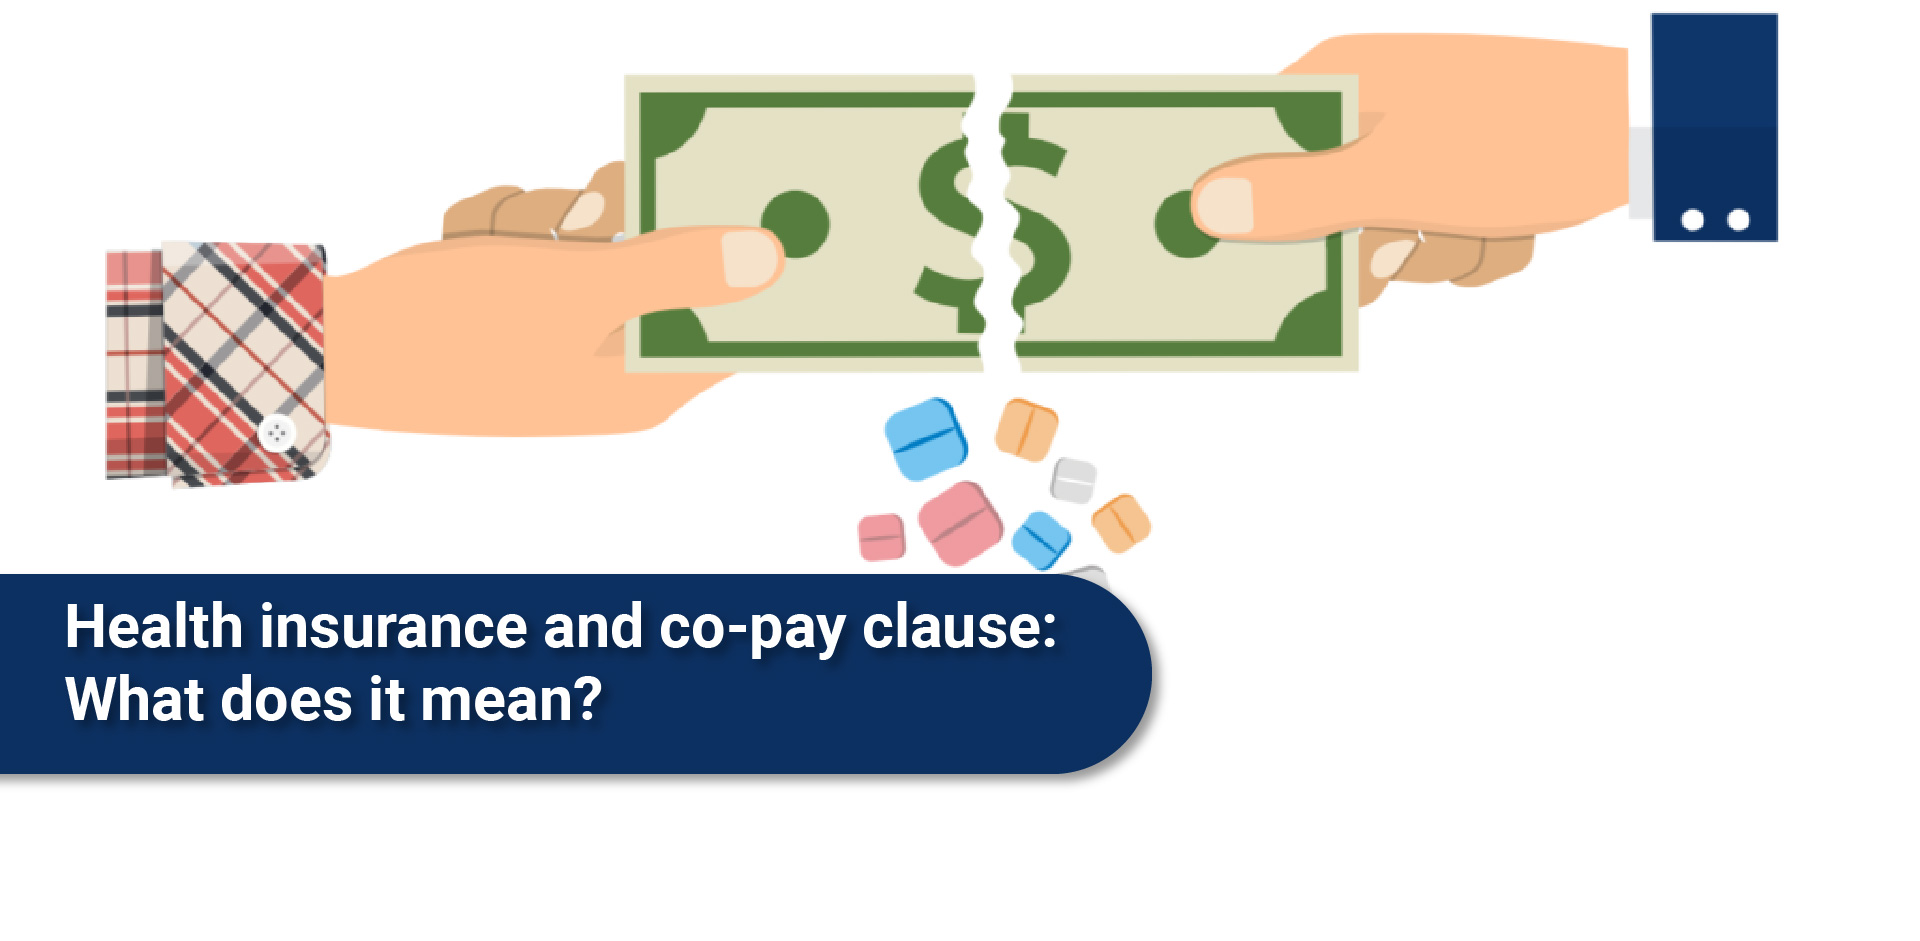 Health insurance and co-pay clause: What does it mean?